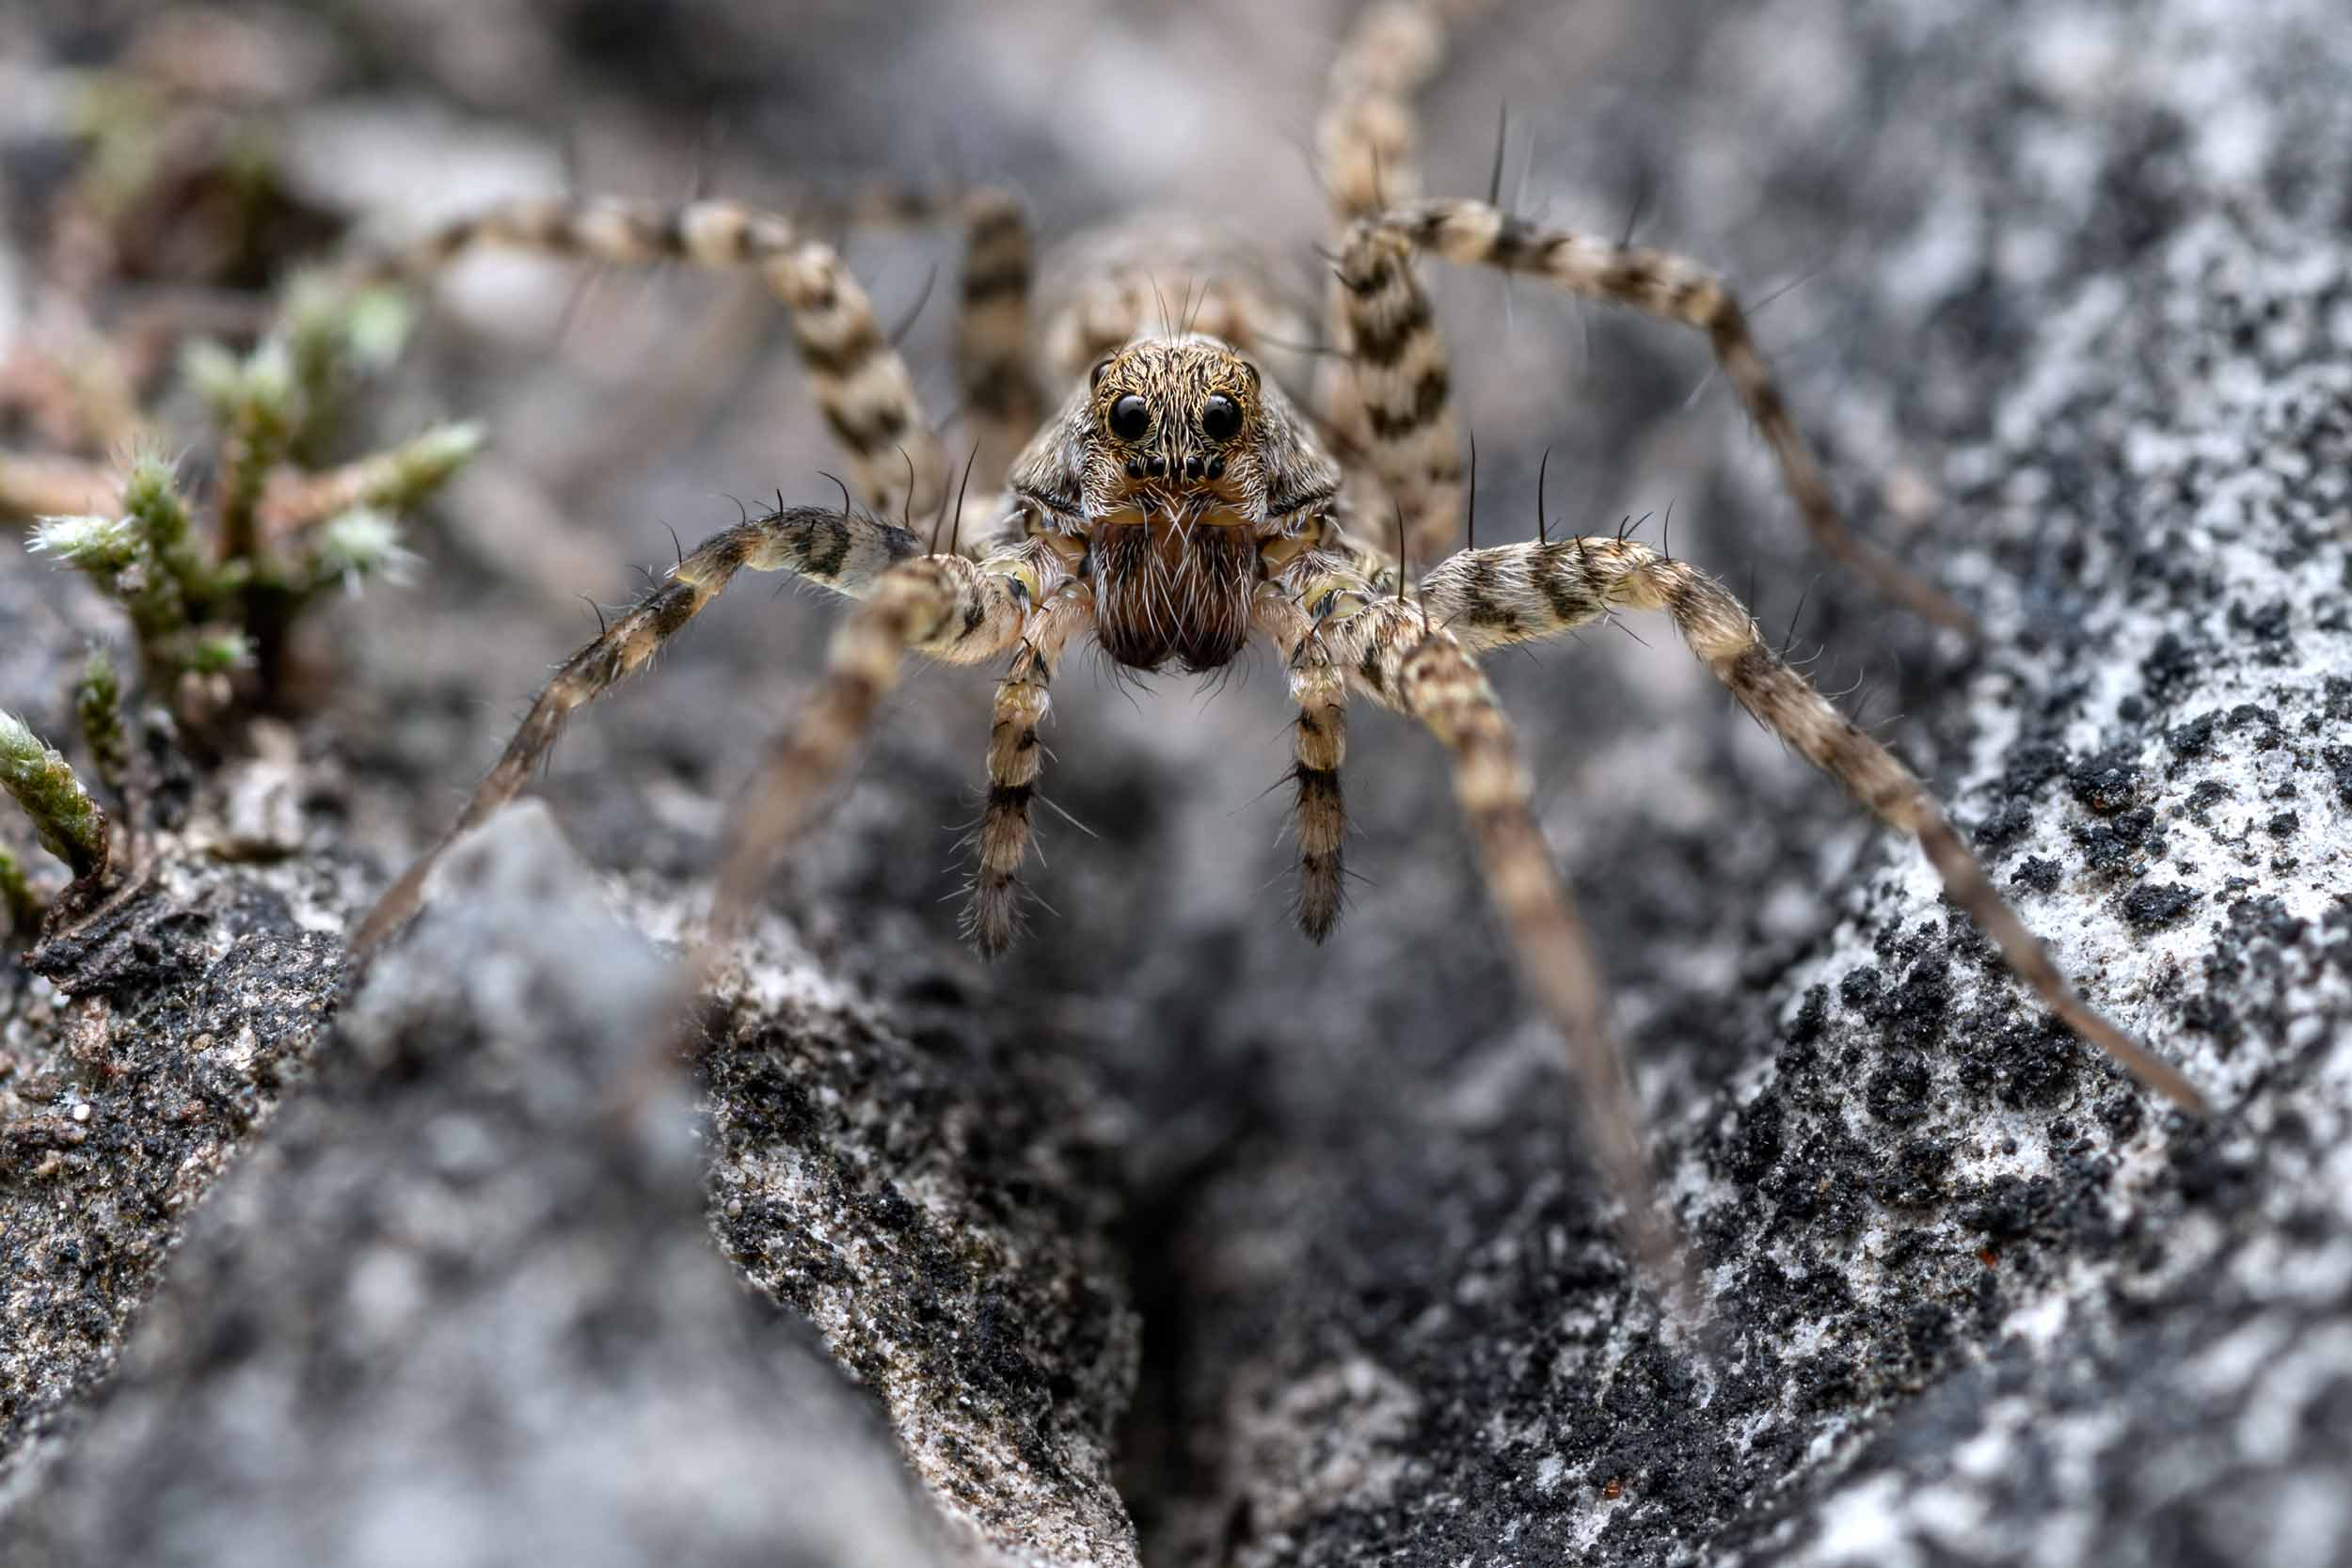 Wolfspider photographed in Lucerne, Switzerland